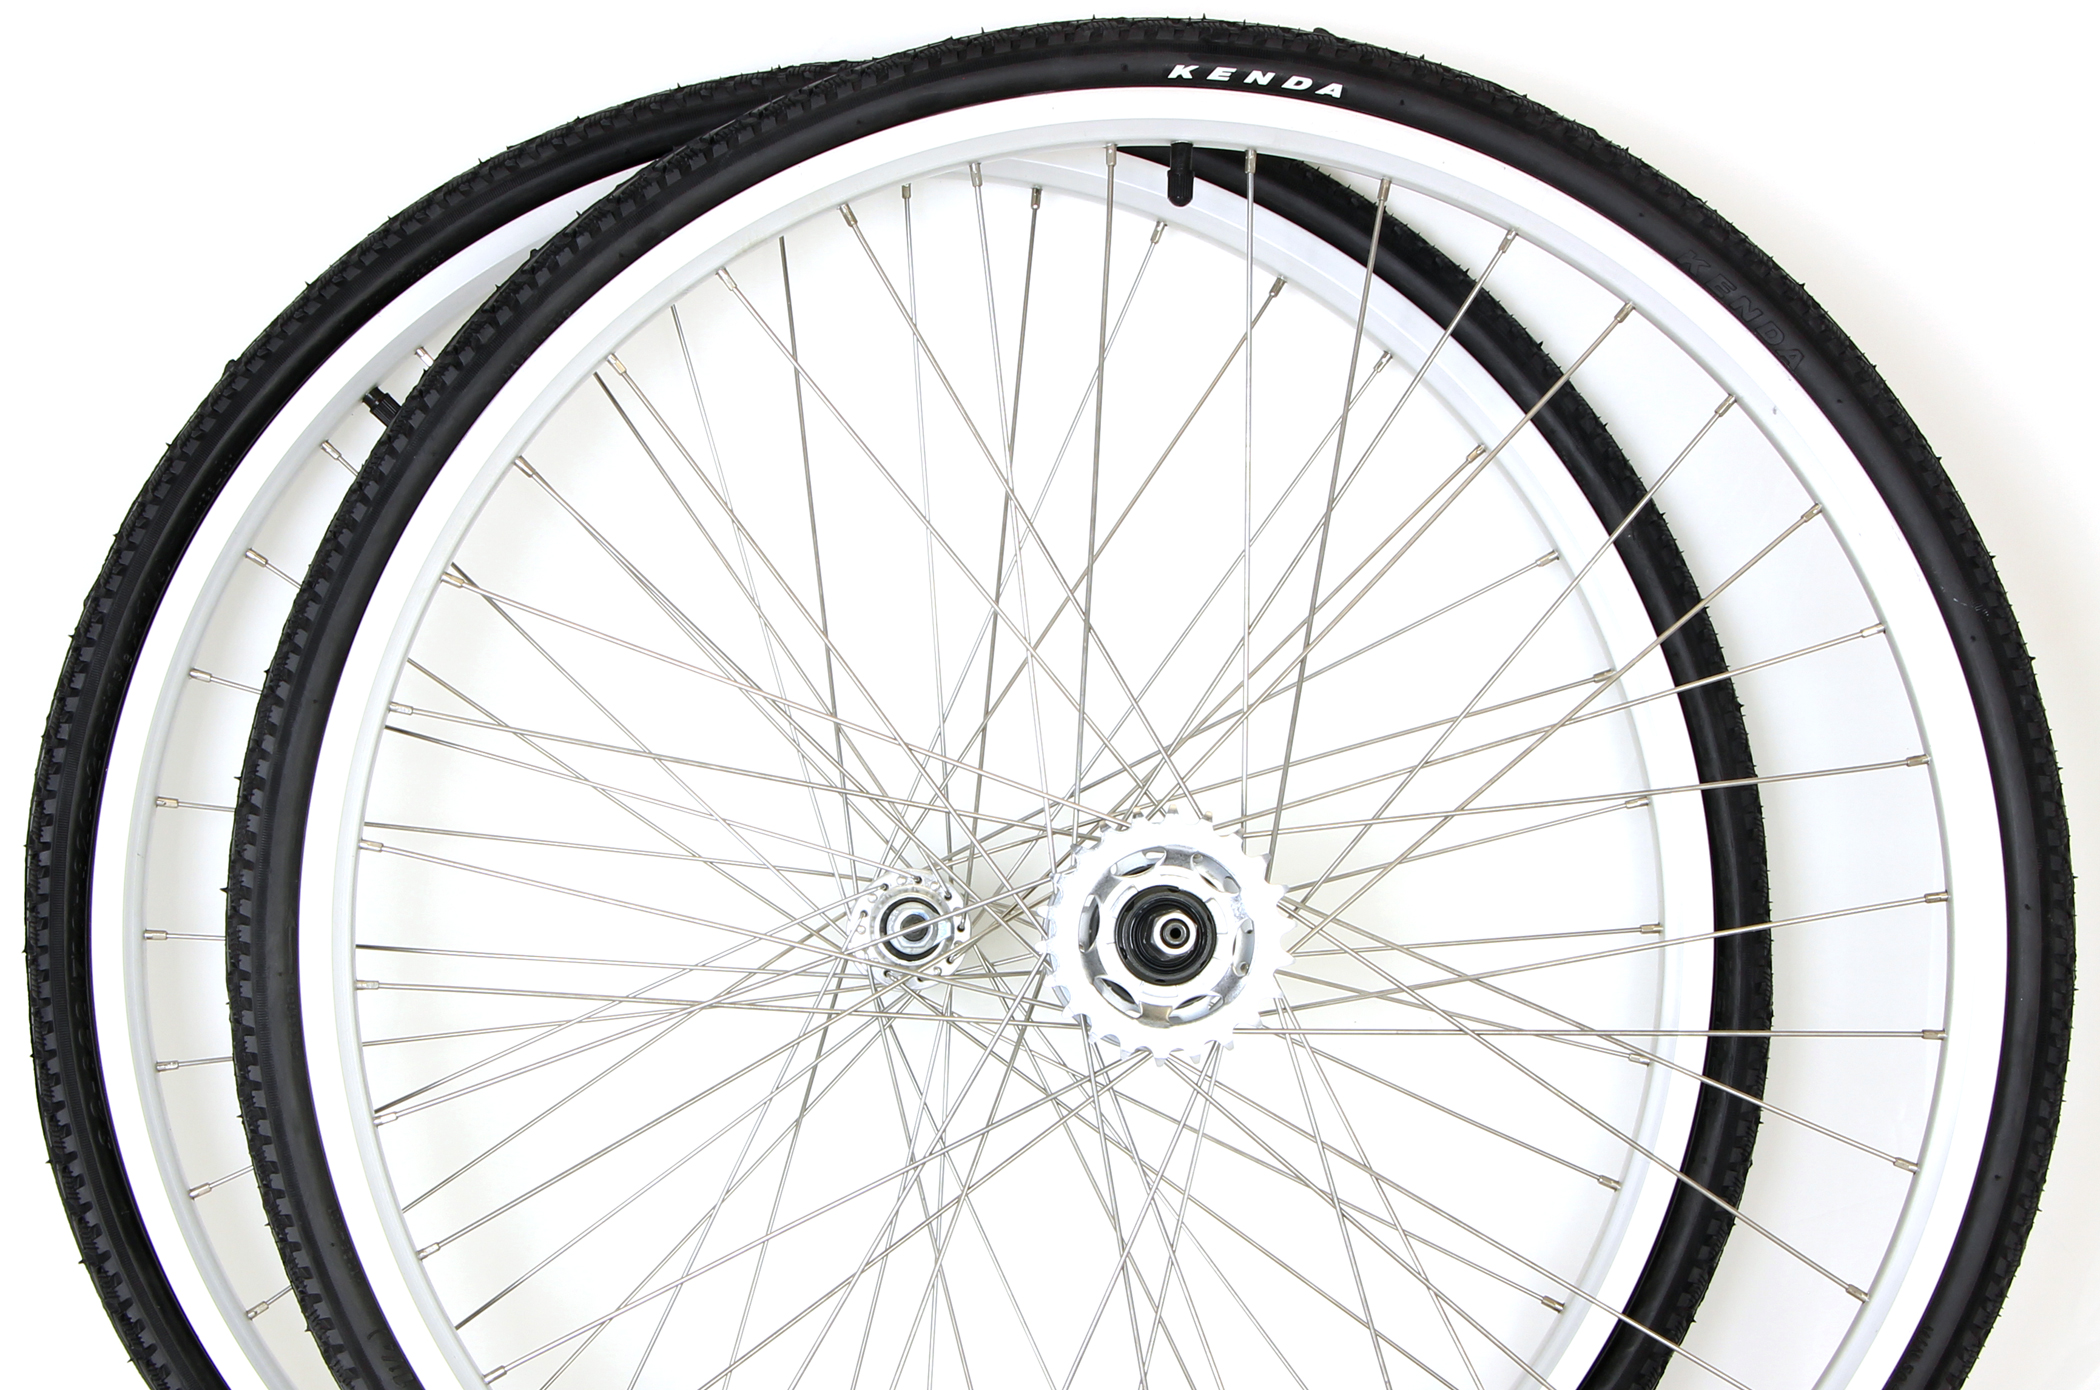 Index of /products/parts/bicycle-wheel-pics